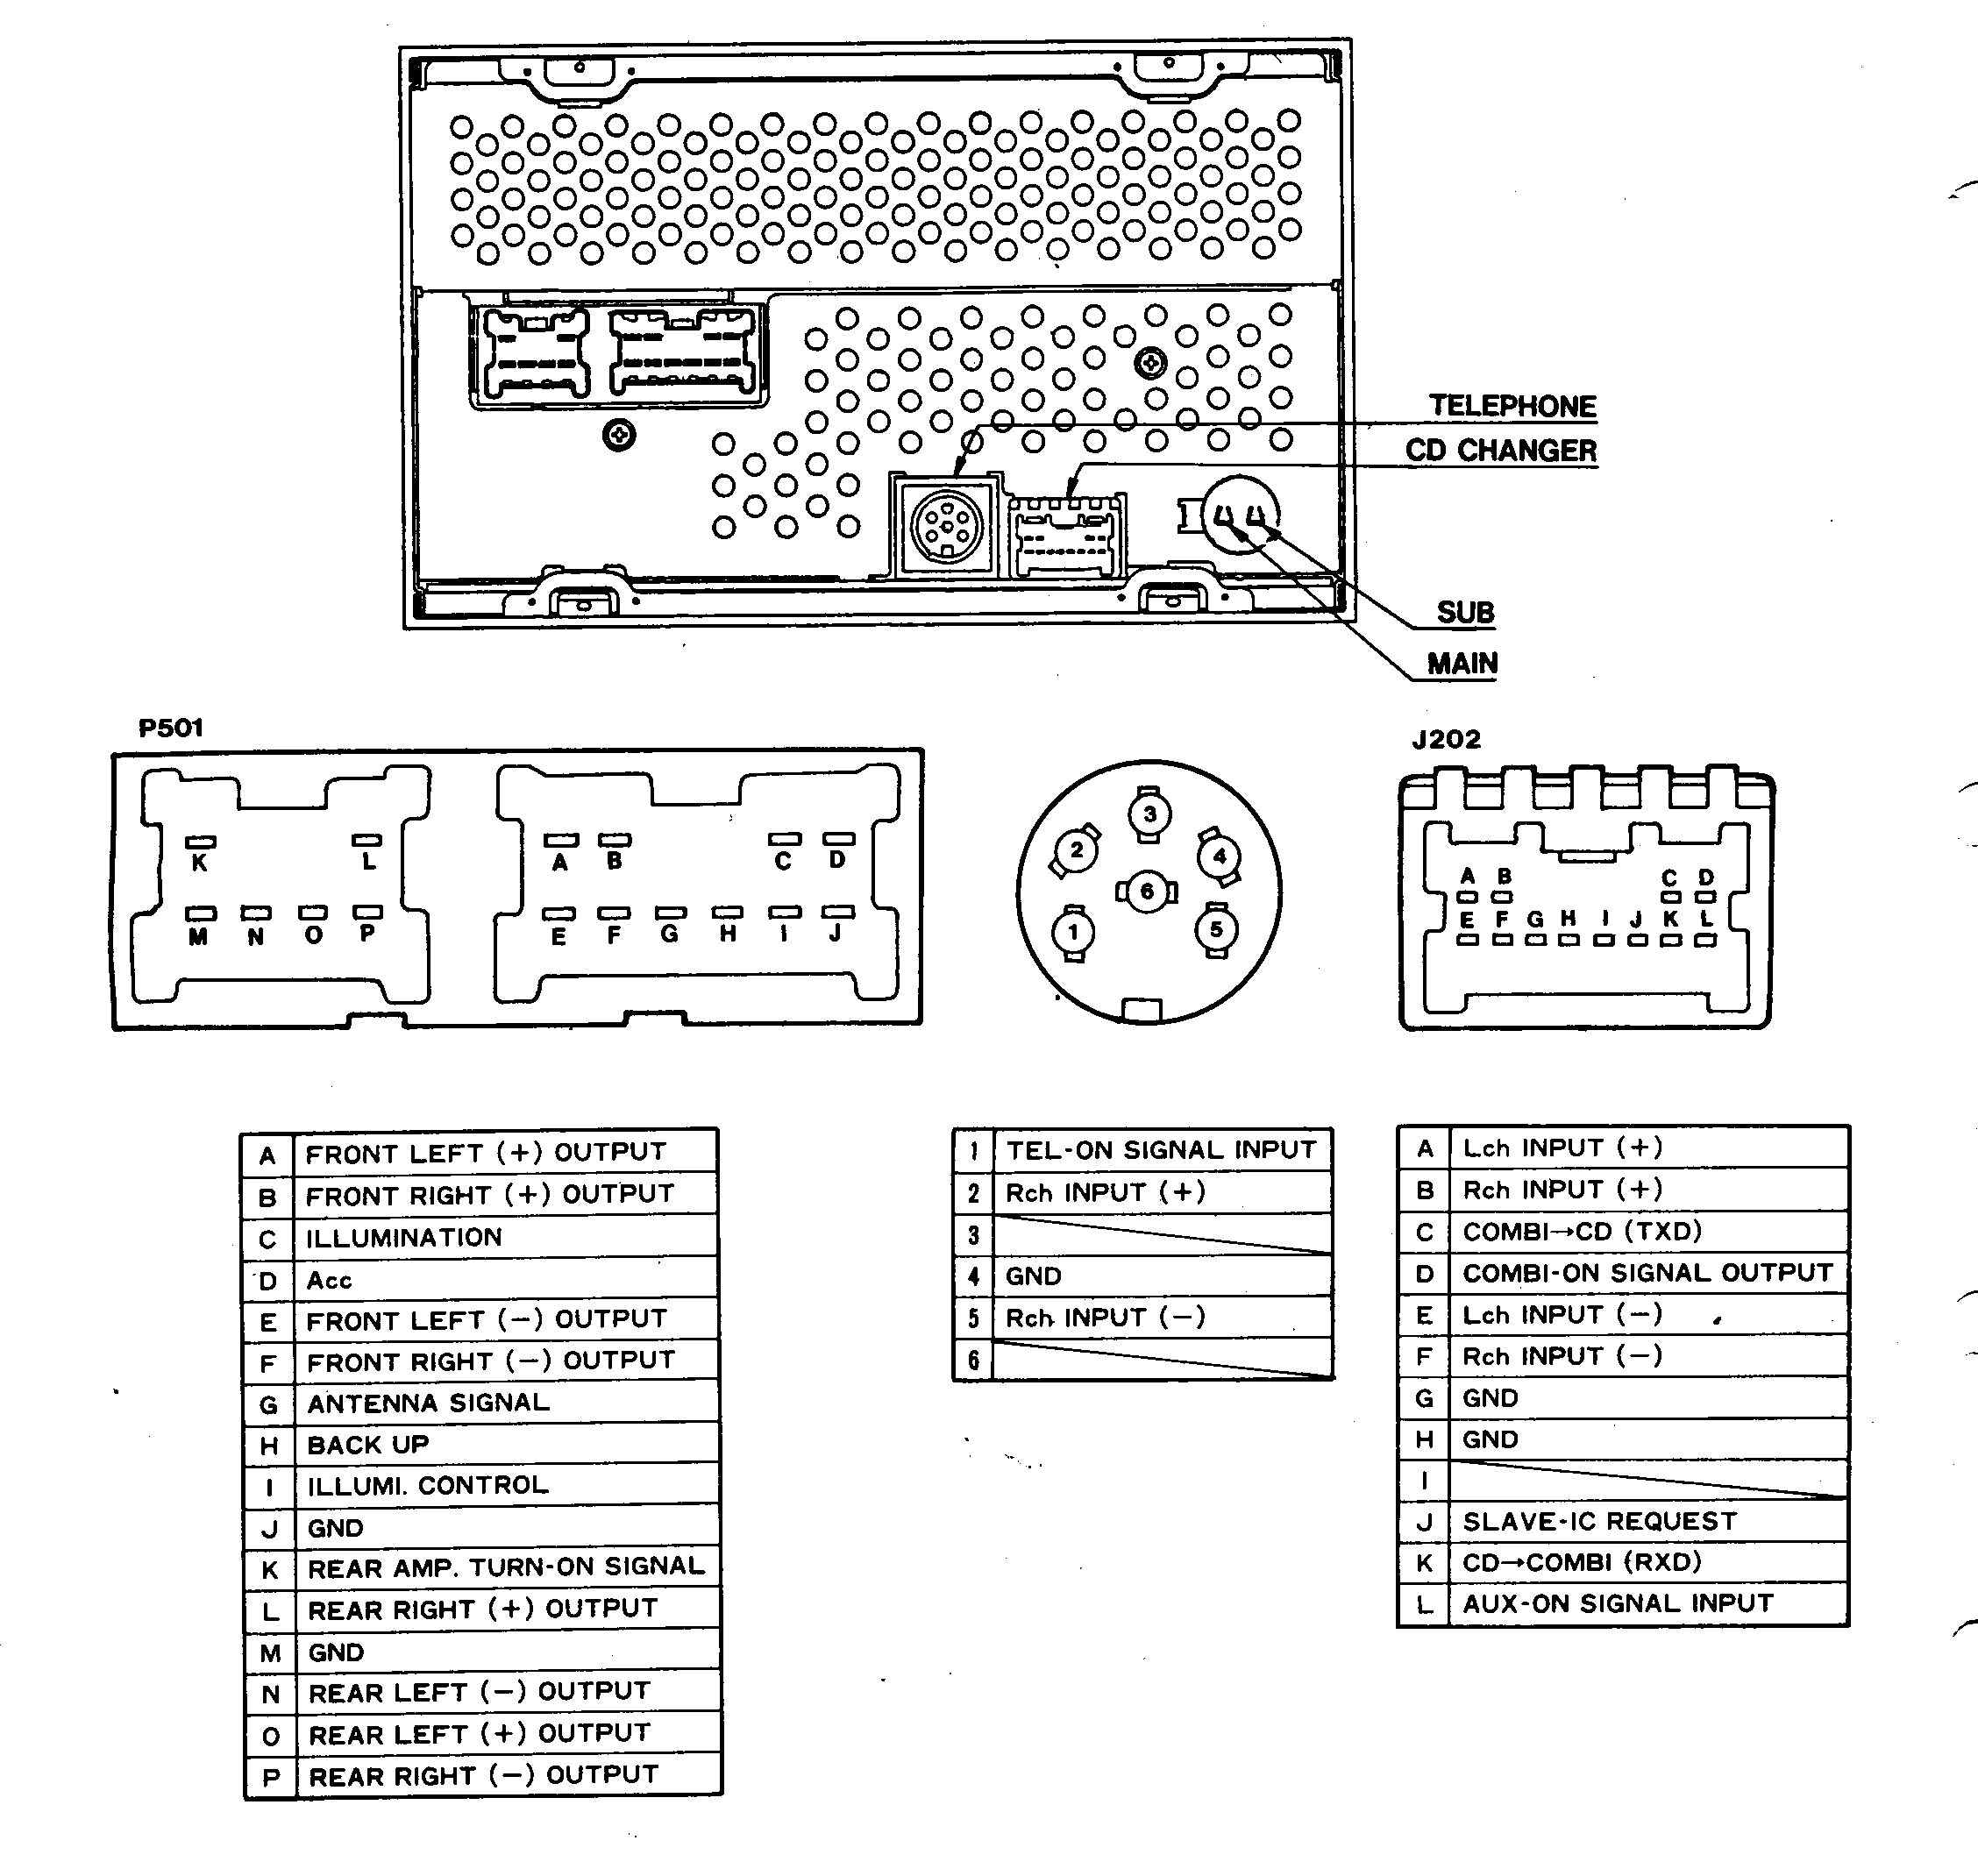 Fuse Box Diagram 1994 F150 Ford Wiring Library Images 2000 150 Nissan Altima Diagrams Pathfinder 1993